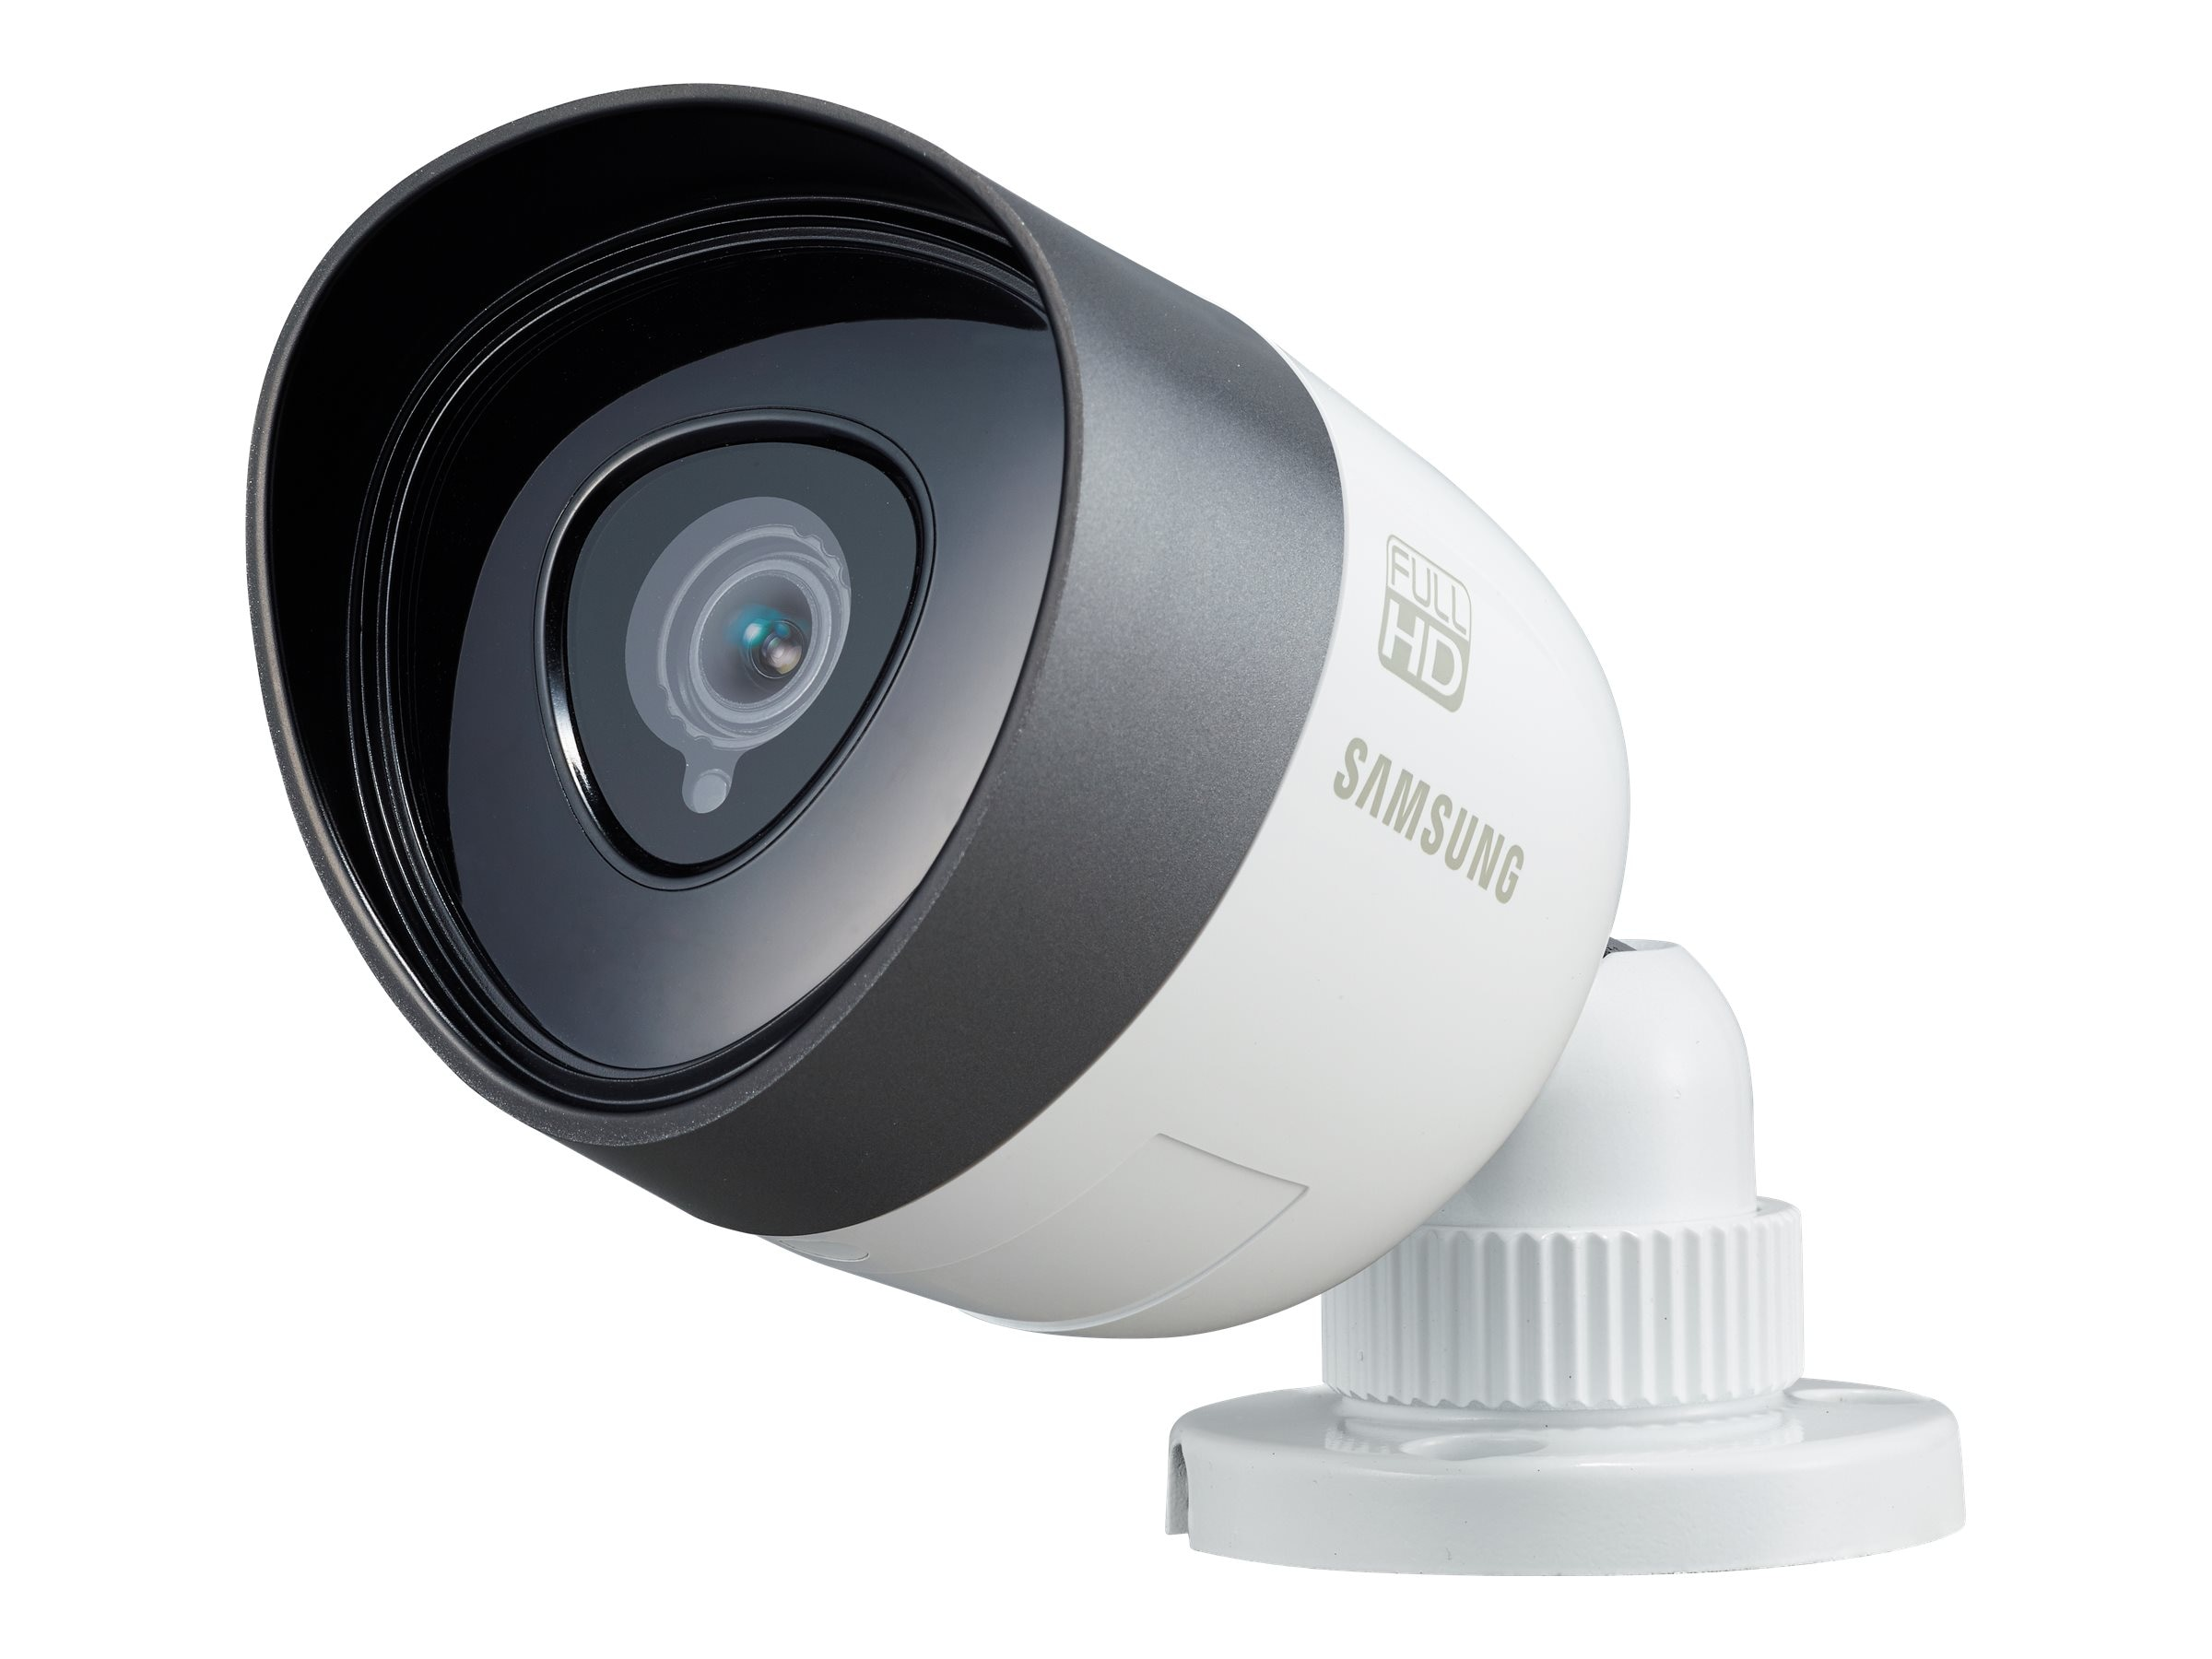 Samsung Weatherproof 1080p High Definition Camera